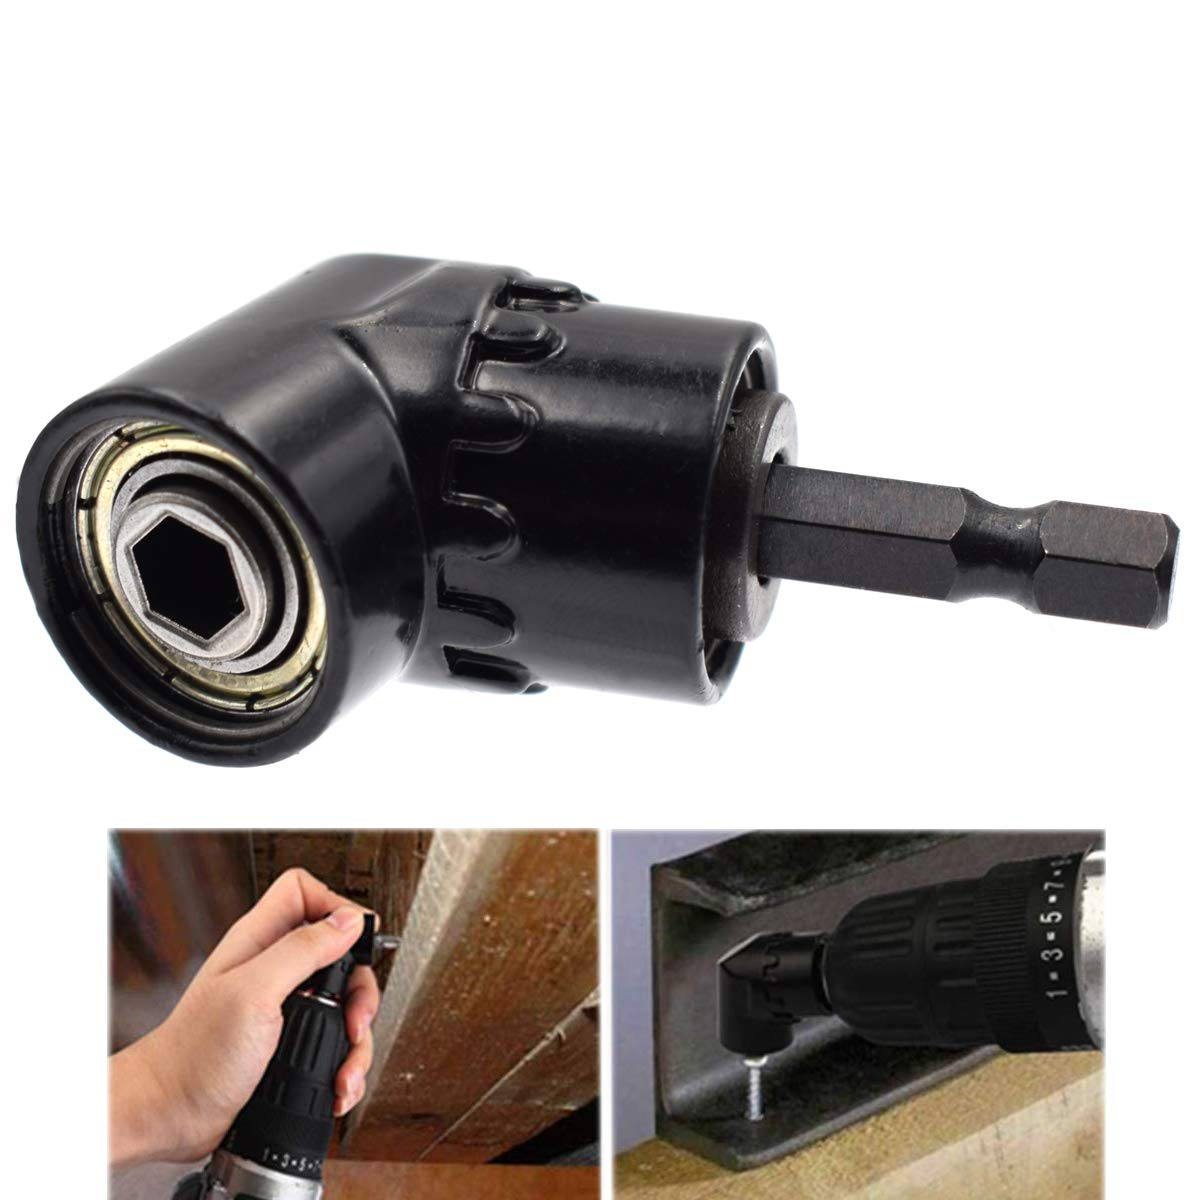 Riyiter Impact Grade Power Hand Tools Driver Sockets Adapter Extension Set 3Pcs 1//4 3//8 1//2 Inch Universal Socket Adapter Set,105 Degree Right Angle Driver Extension Screwdriver Drill Attachment